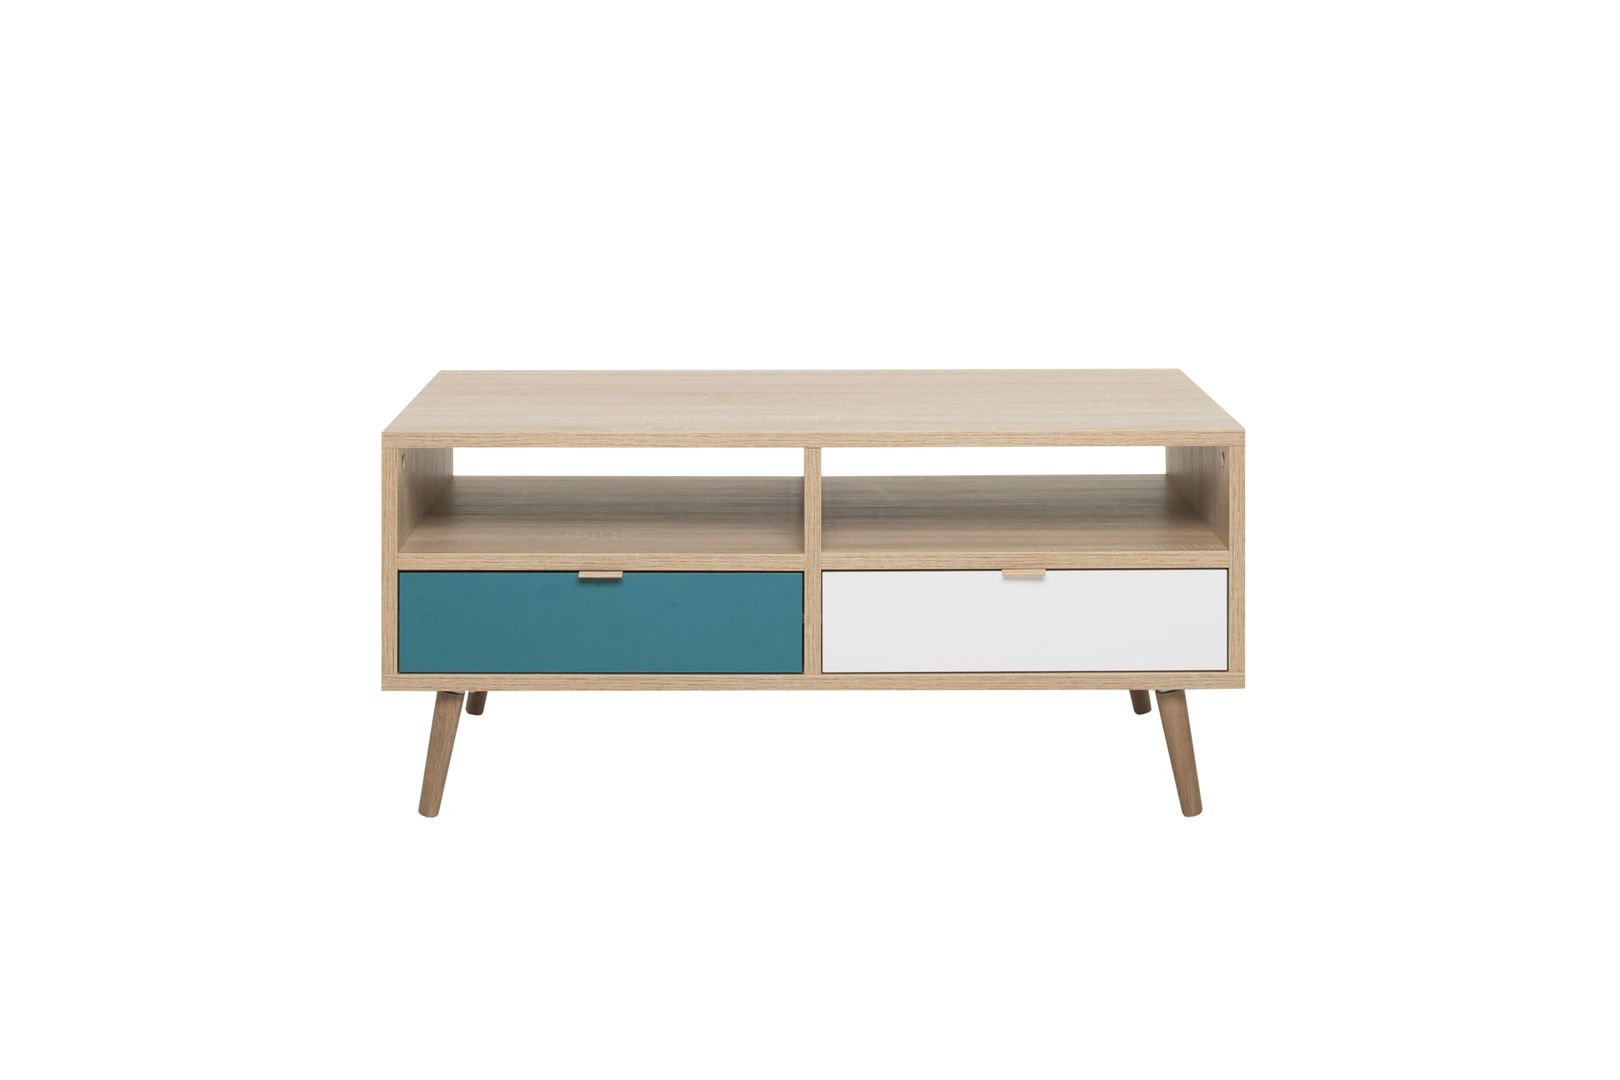 Table basse 2 tiroirs style scandinave anave - Table basse style scandinave ...